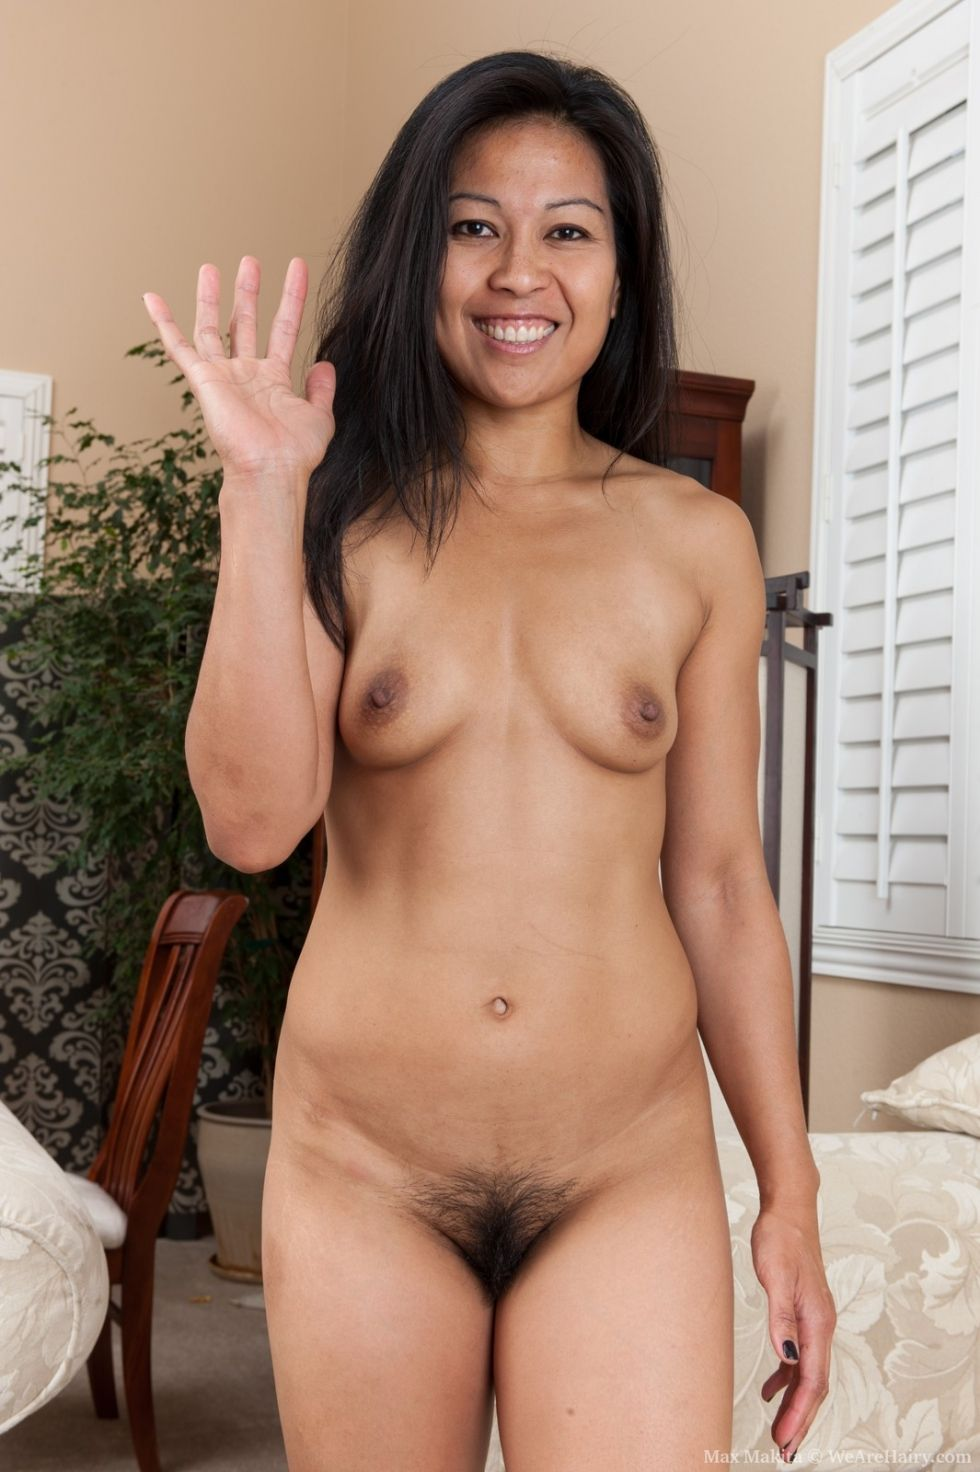 Matured asian ladies nude pics